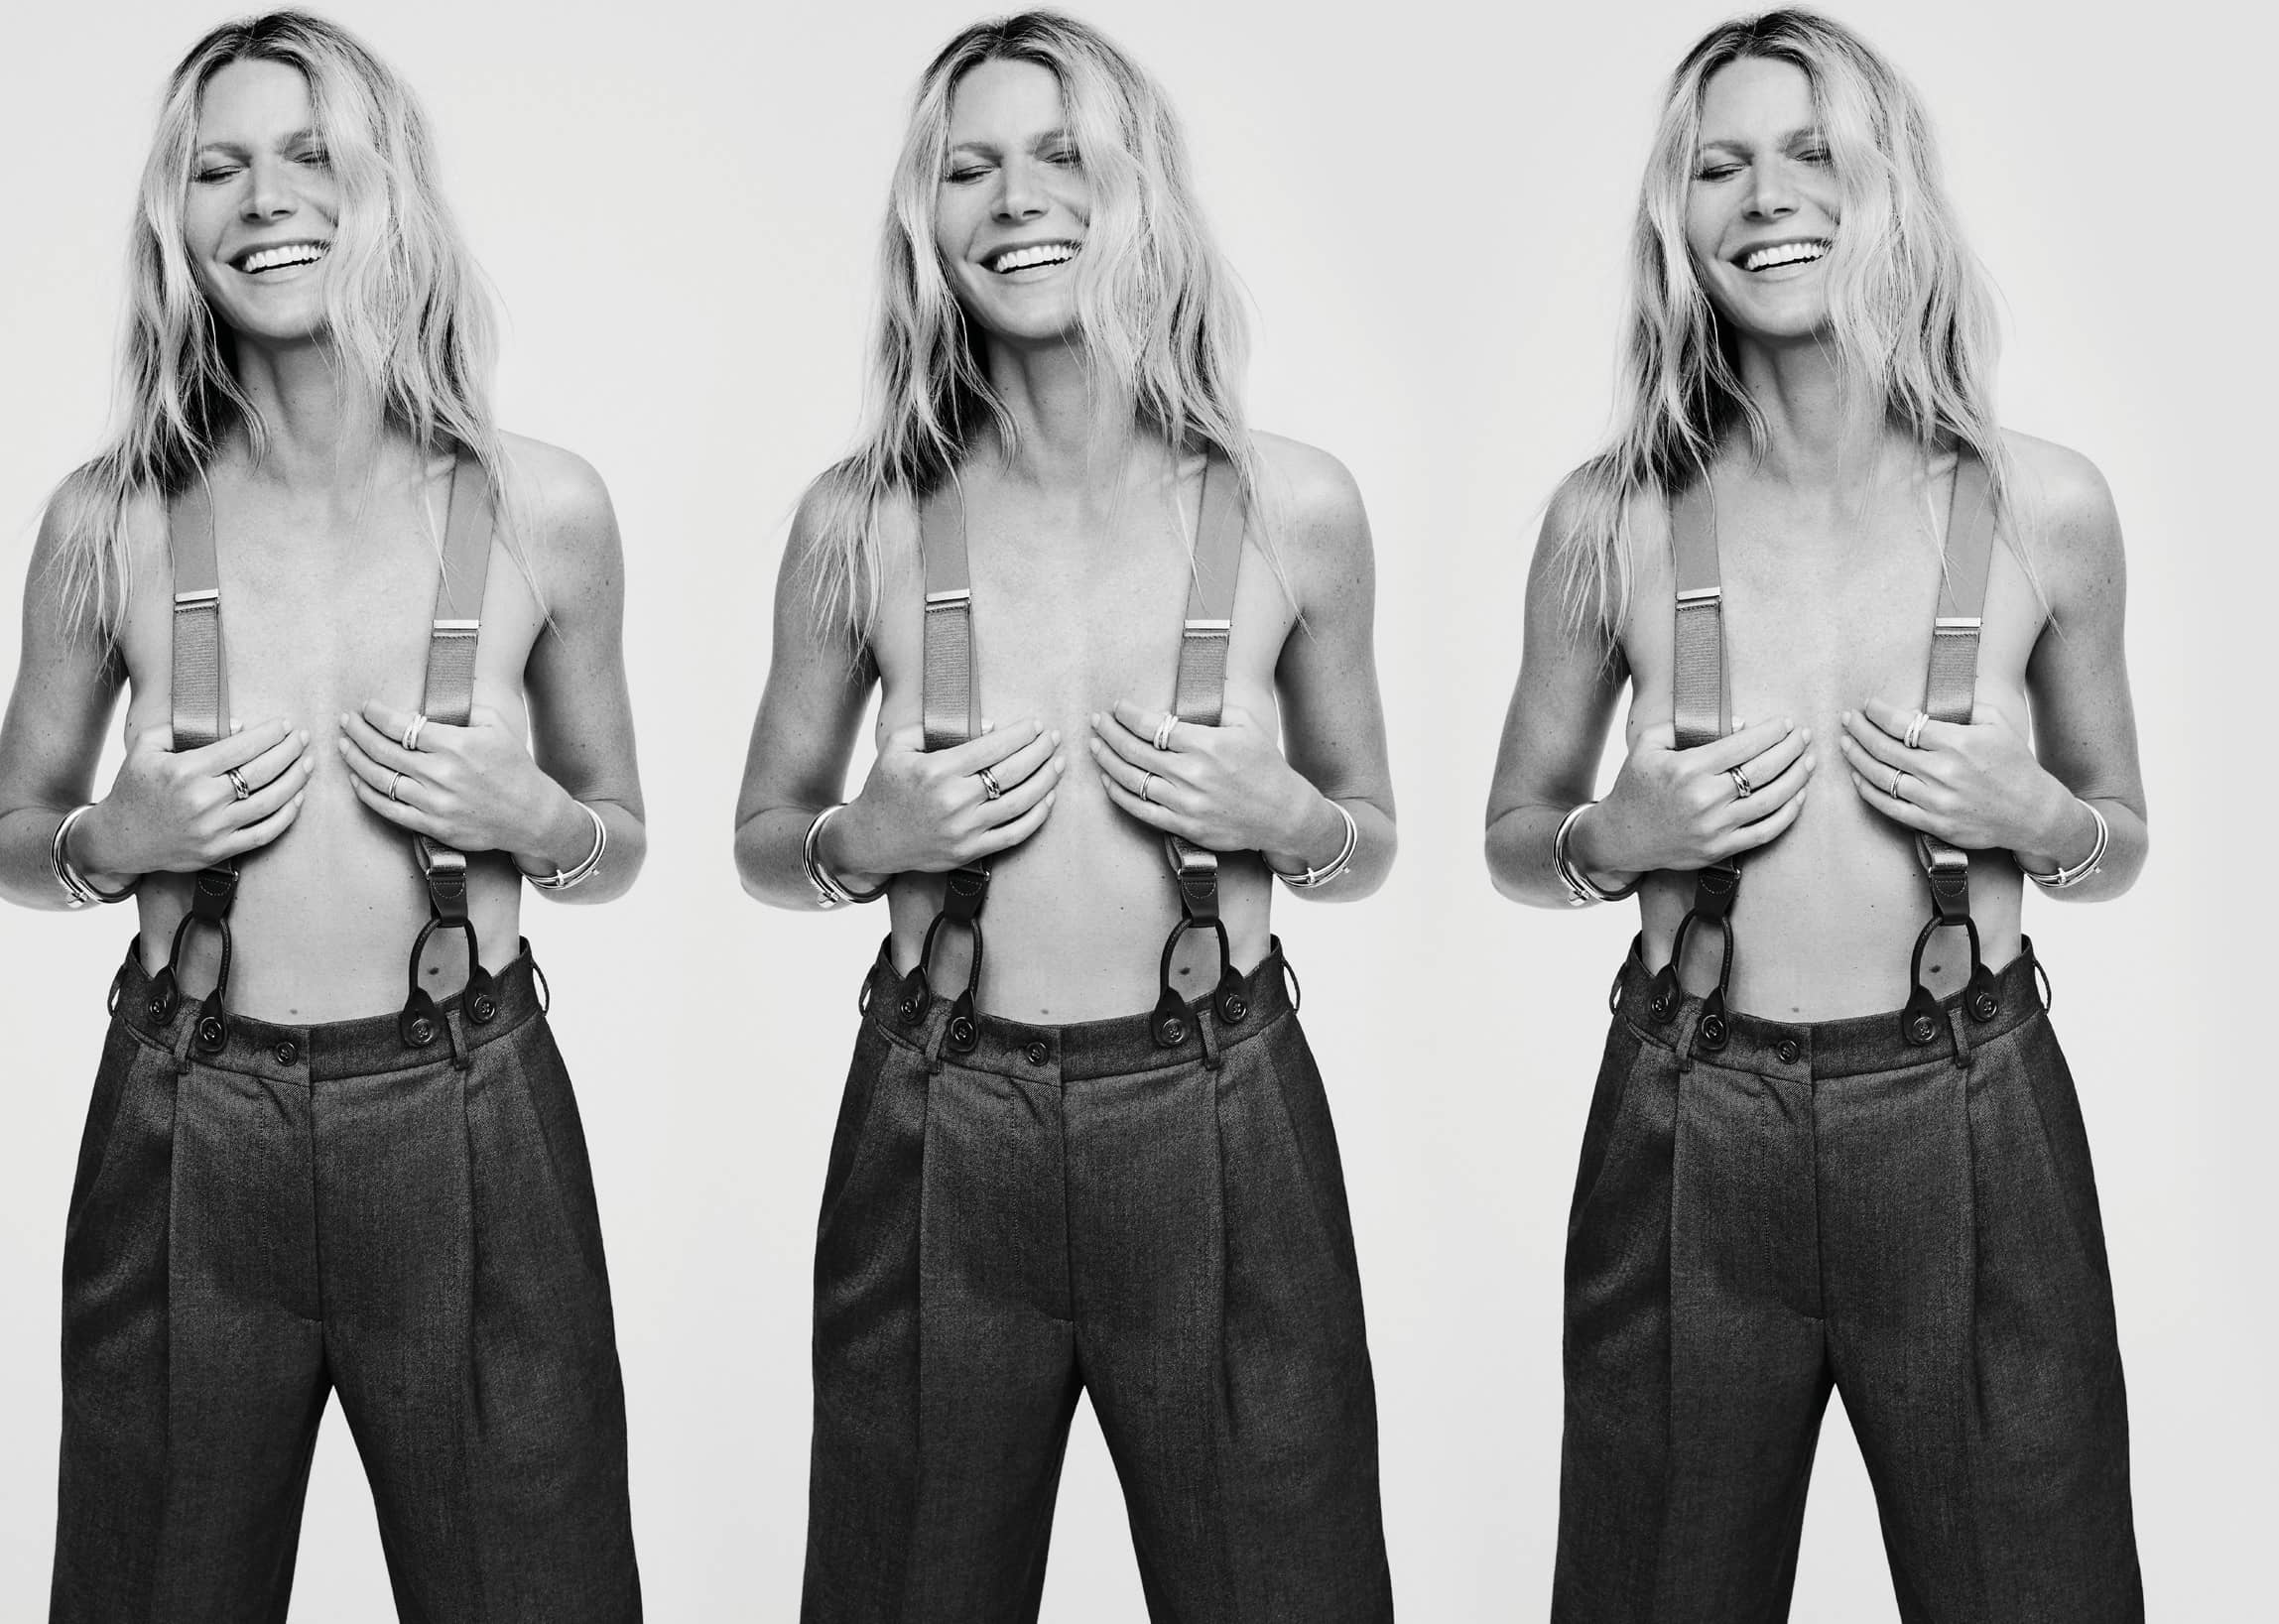 Gwyneth Paltrow, Shows Us What It's Like To Live With Ambition Unleashed